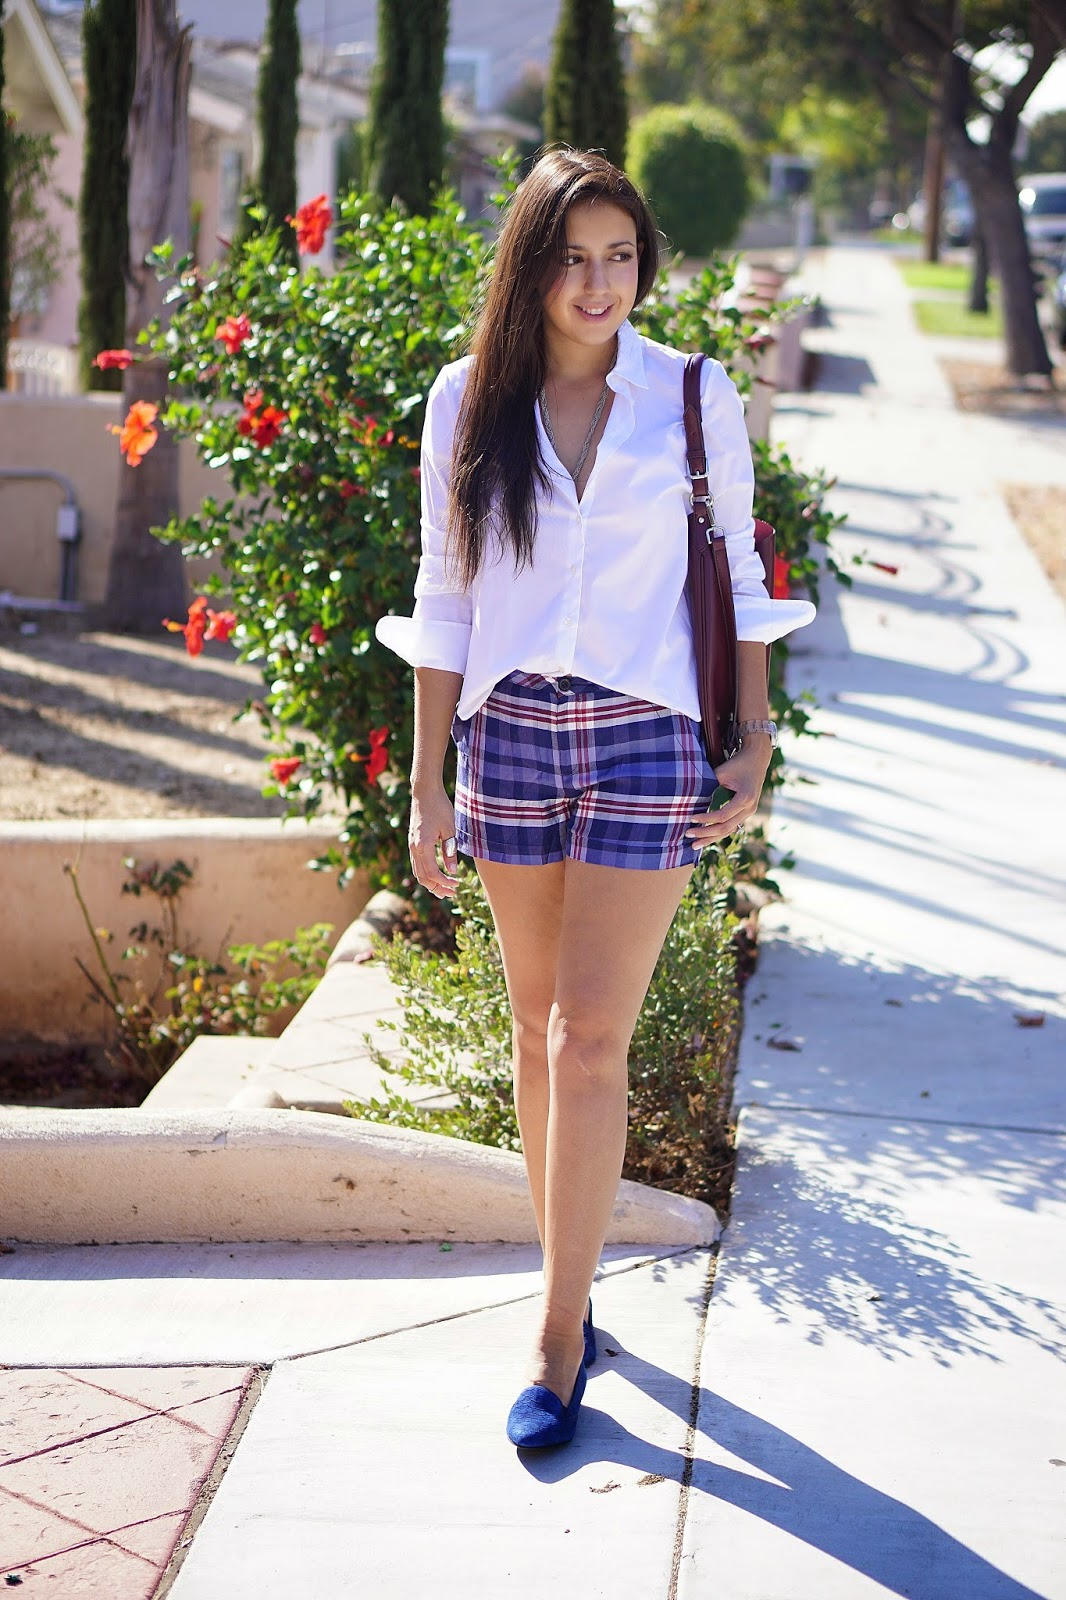 Piperlime, Moments of Chic, Joe Fresh, Joe Fresh White Button Up Shirt, White Button Up Shirt, Aldo Shoes, Blue Suede Shoes, TJ Maxx Purse, Burgundy Purse, MNG by Mango, Plaid Shorts,